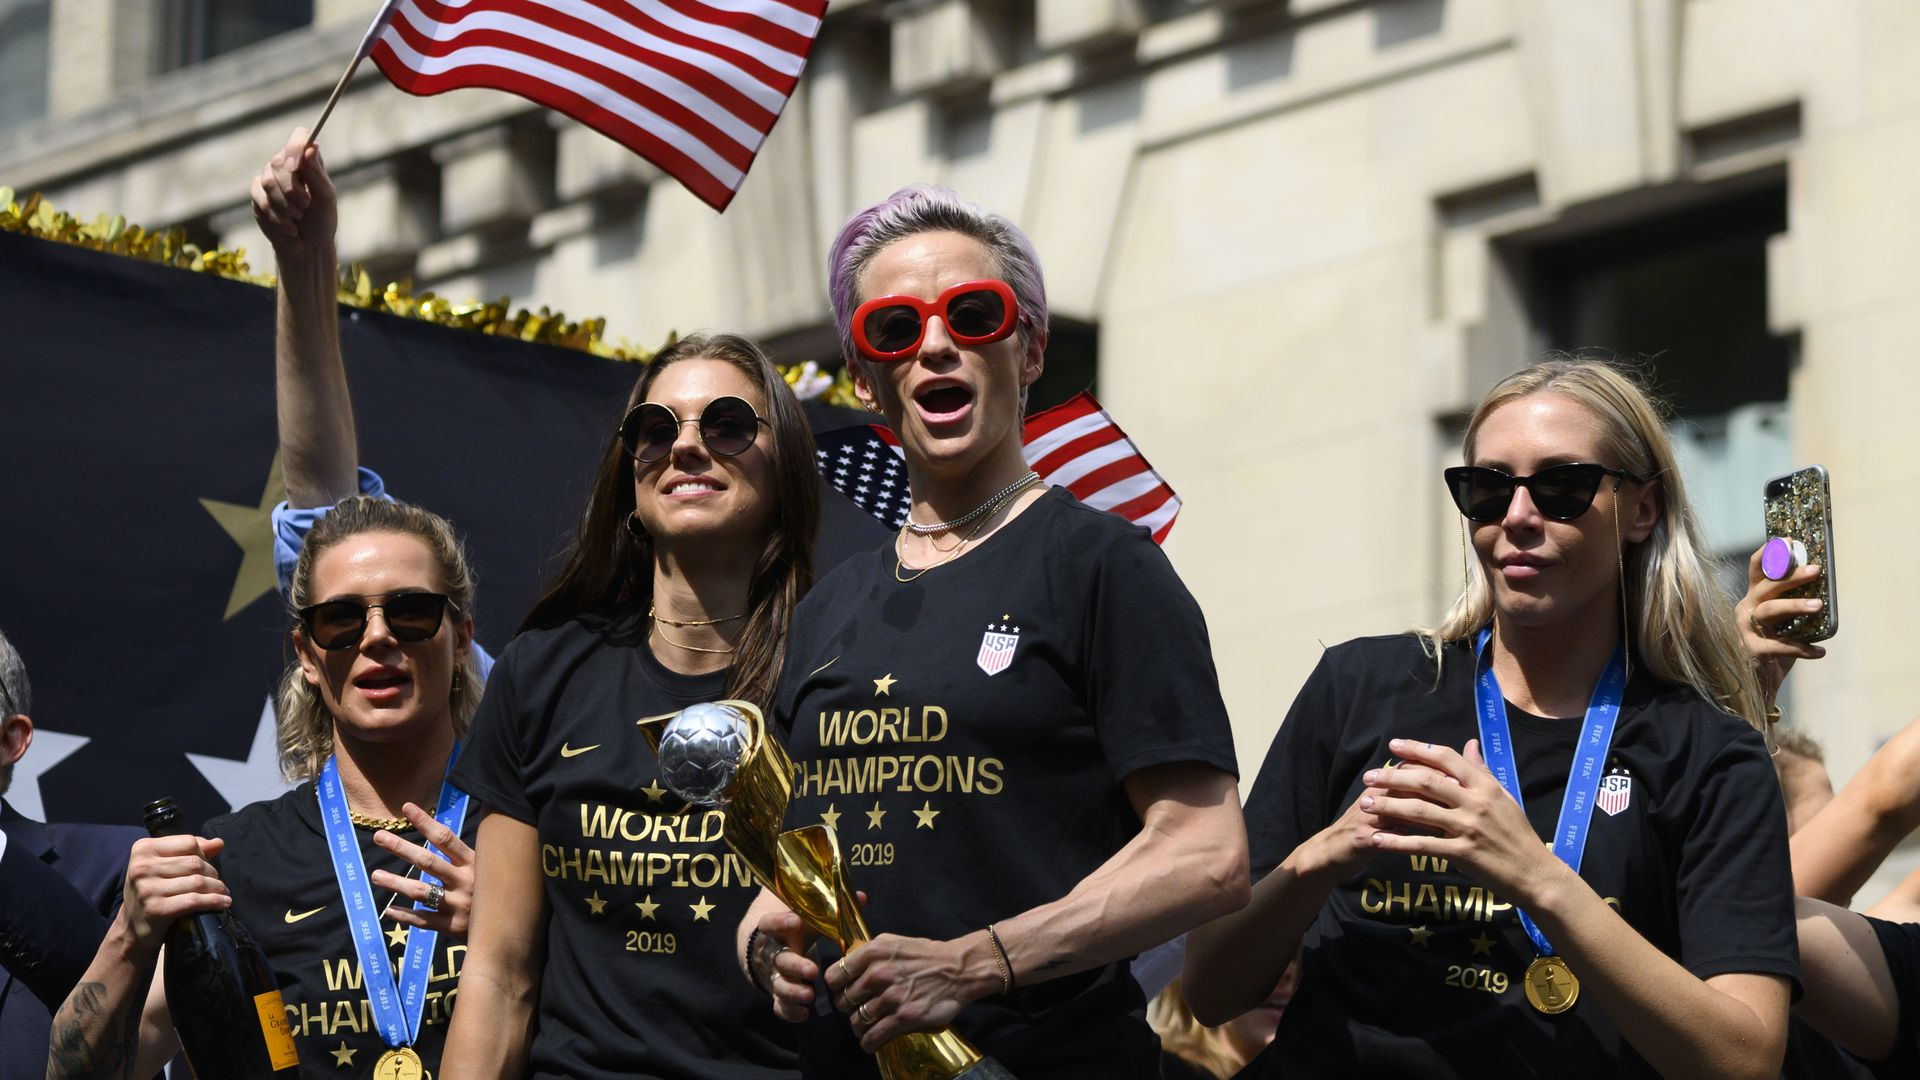 U.S. Soccer says women's national team paid more than the men's side